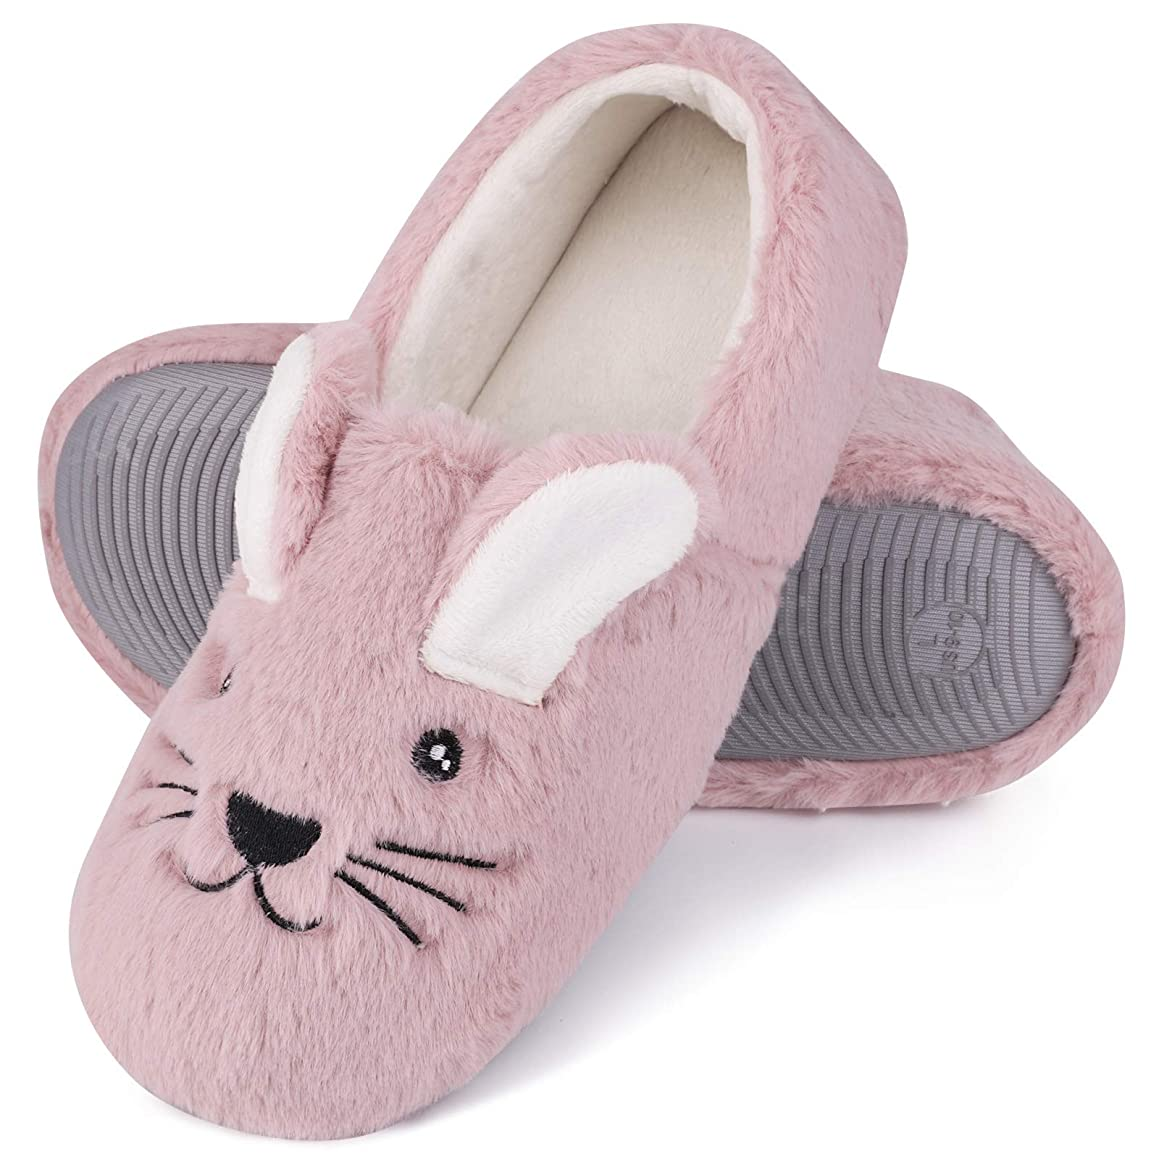 Women's Comfy Faux Fur Memory Foams Loafer Slippers Fuzzy Plush House Shoes w/Anti-Skid Rubber Sole (Medium / 7-8 B(M) US, Rabbit) Pink